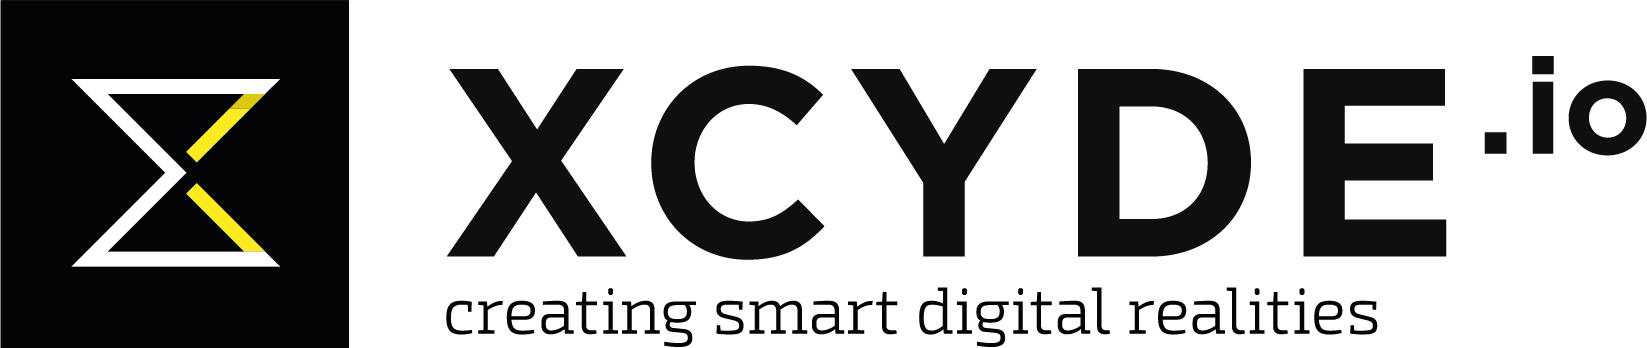 XCYDE Logo Virtual Reality